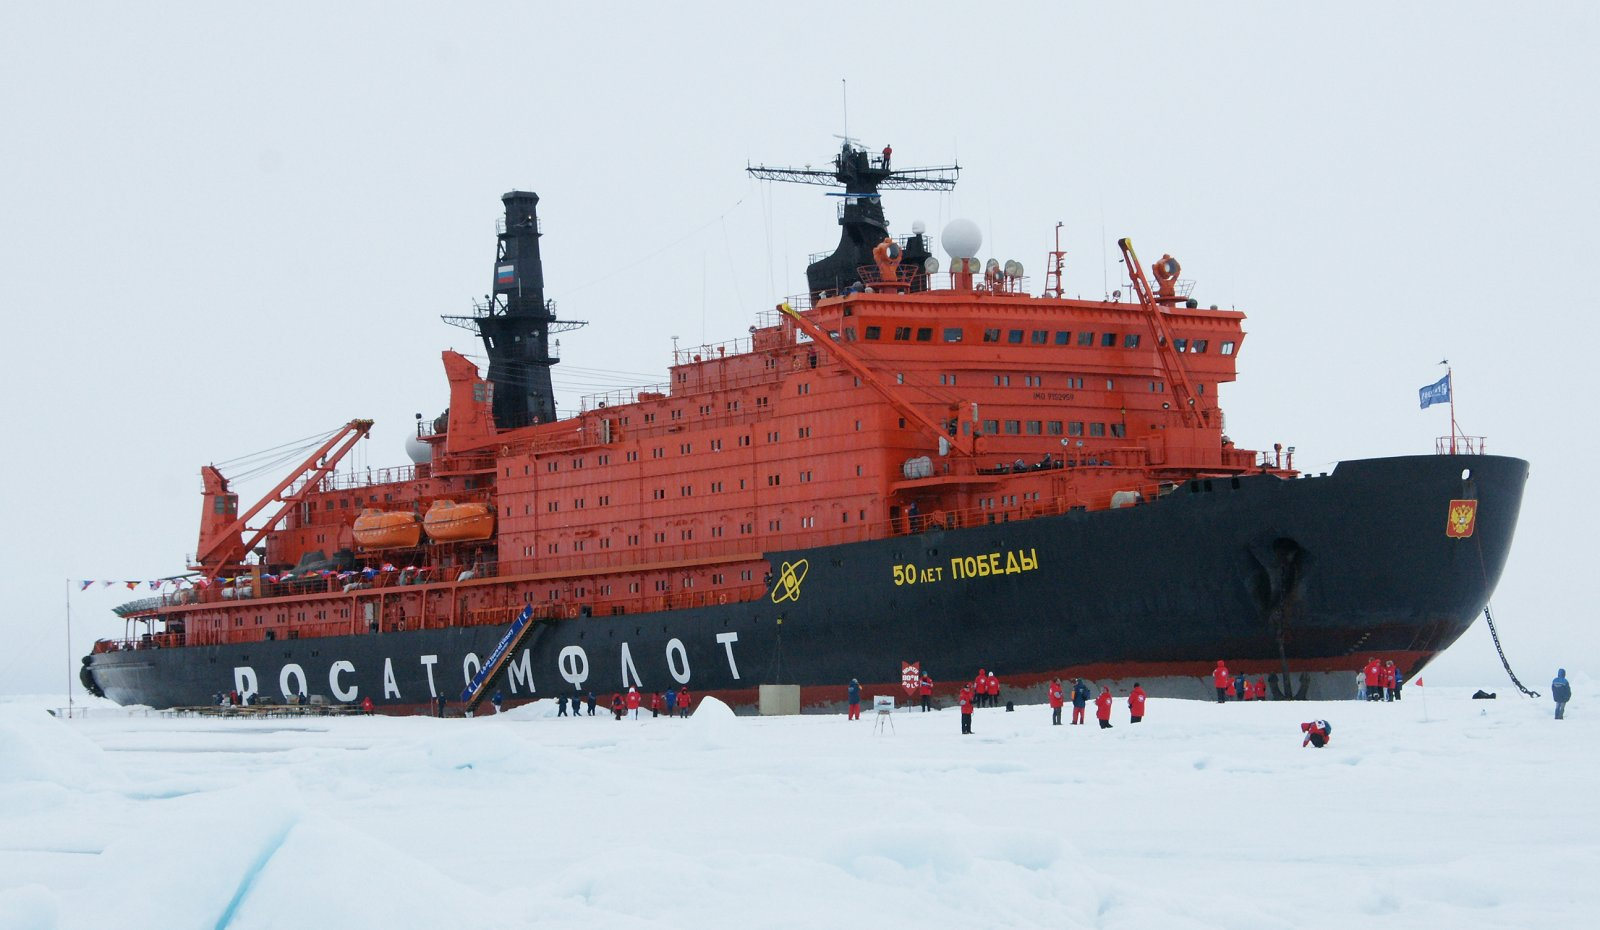 A Russian nuclear-powered icebreaker will make 5 North Pole voyages this summer